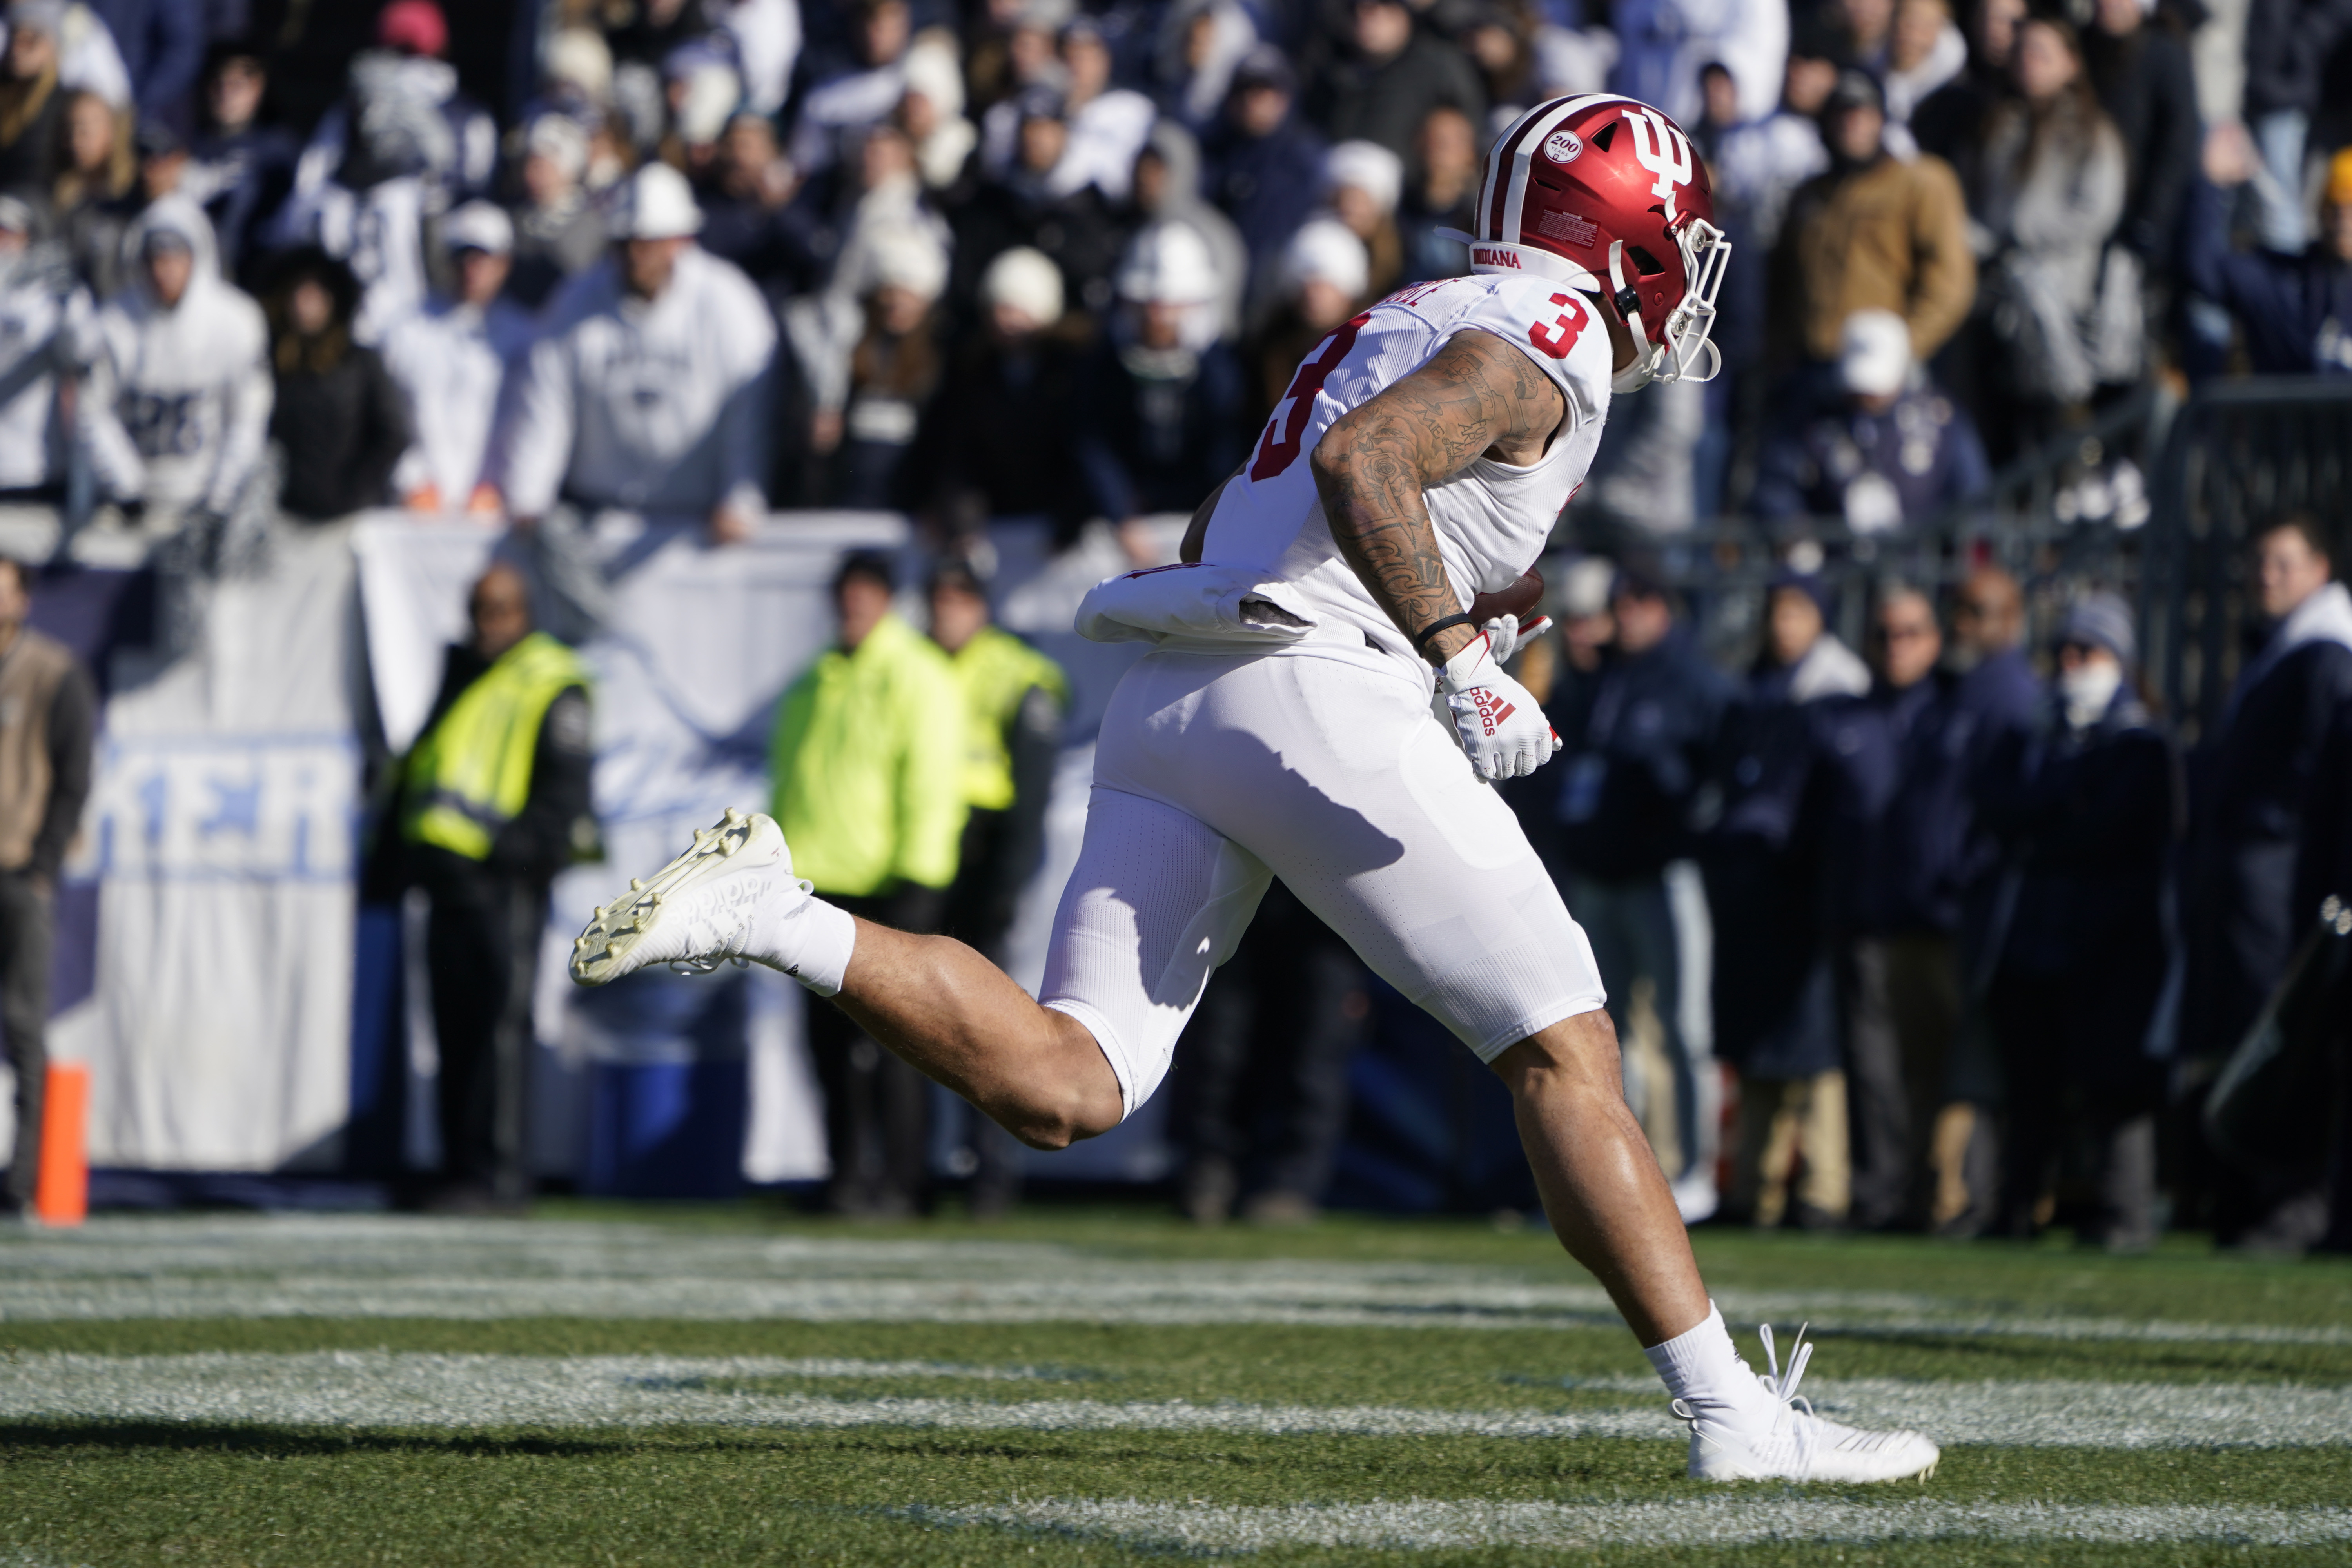 COLLEGE FOOTBALL: NOV 16 Indiana at Penn State